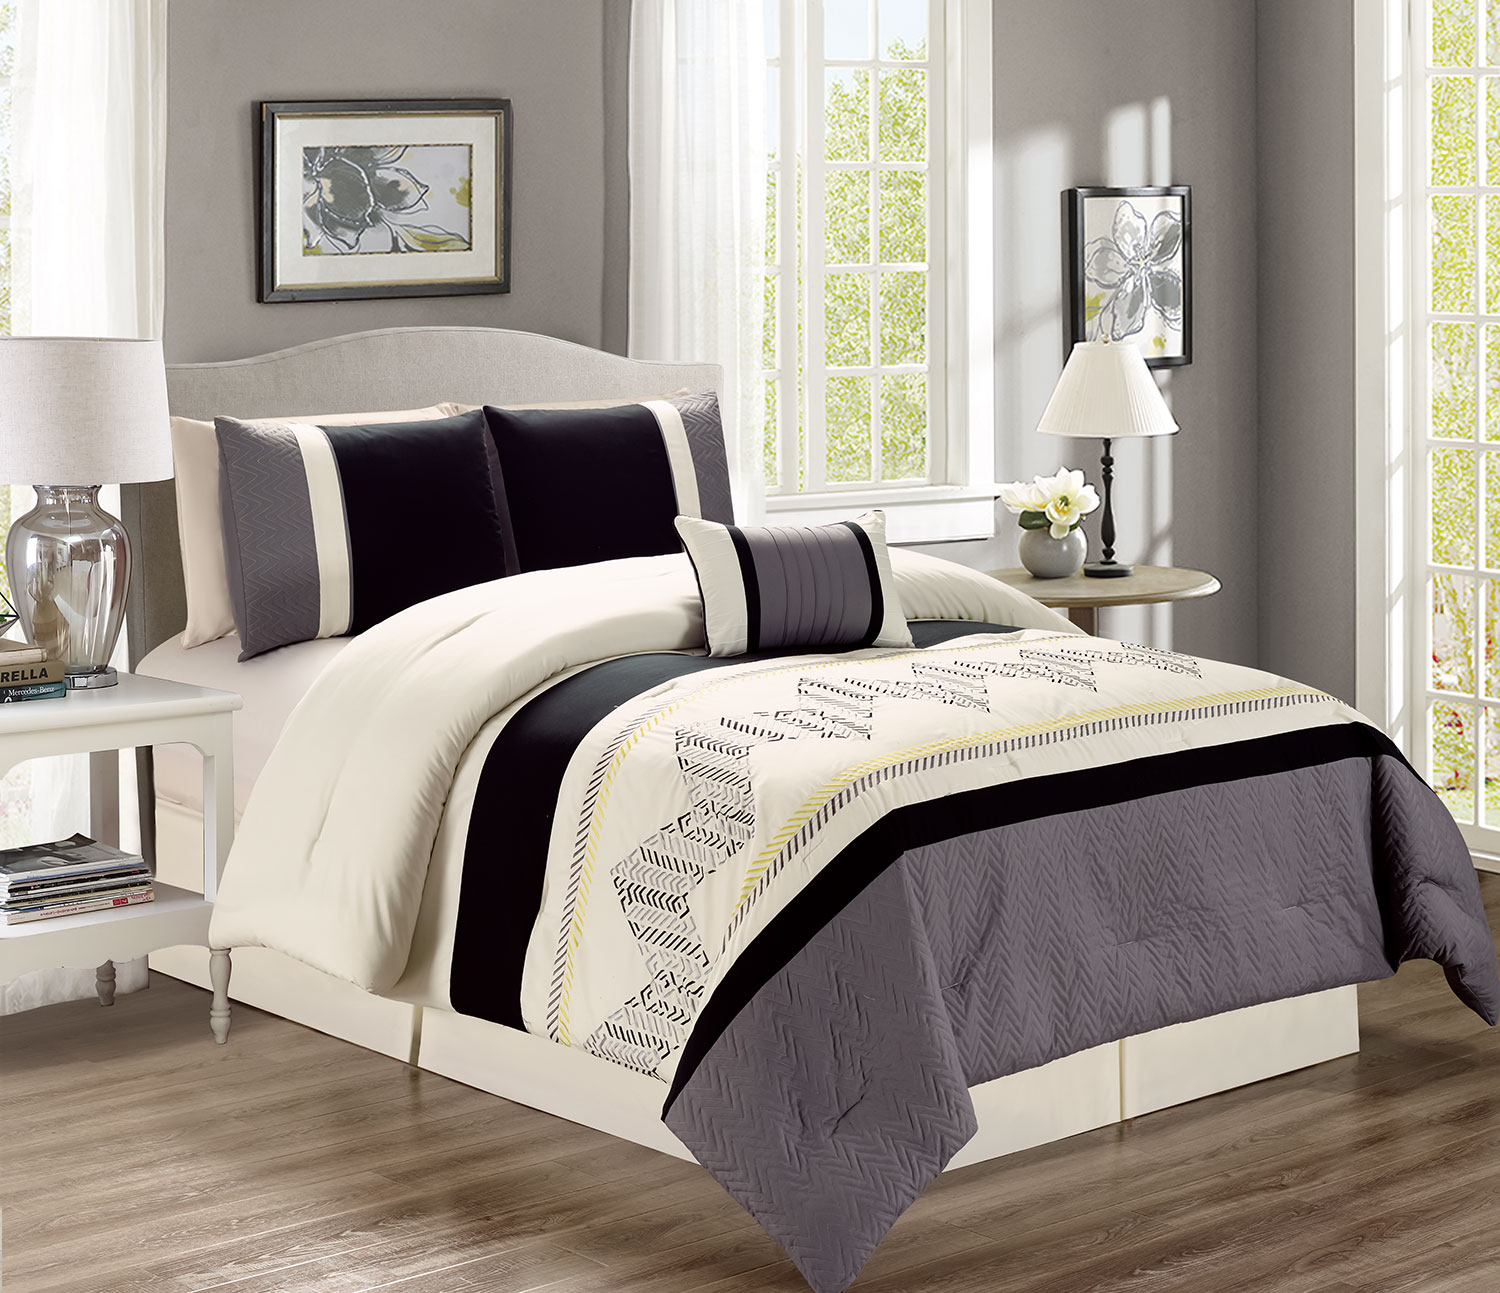 Lemoore 4-Piece Queen Comforter Set